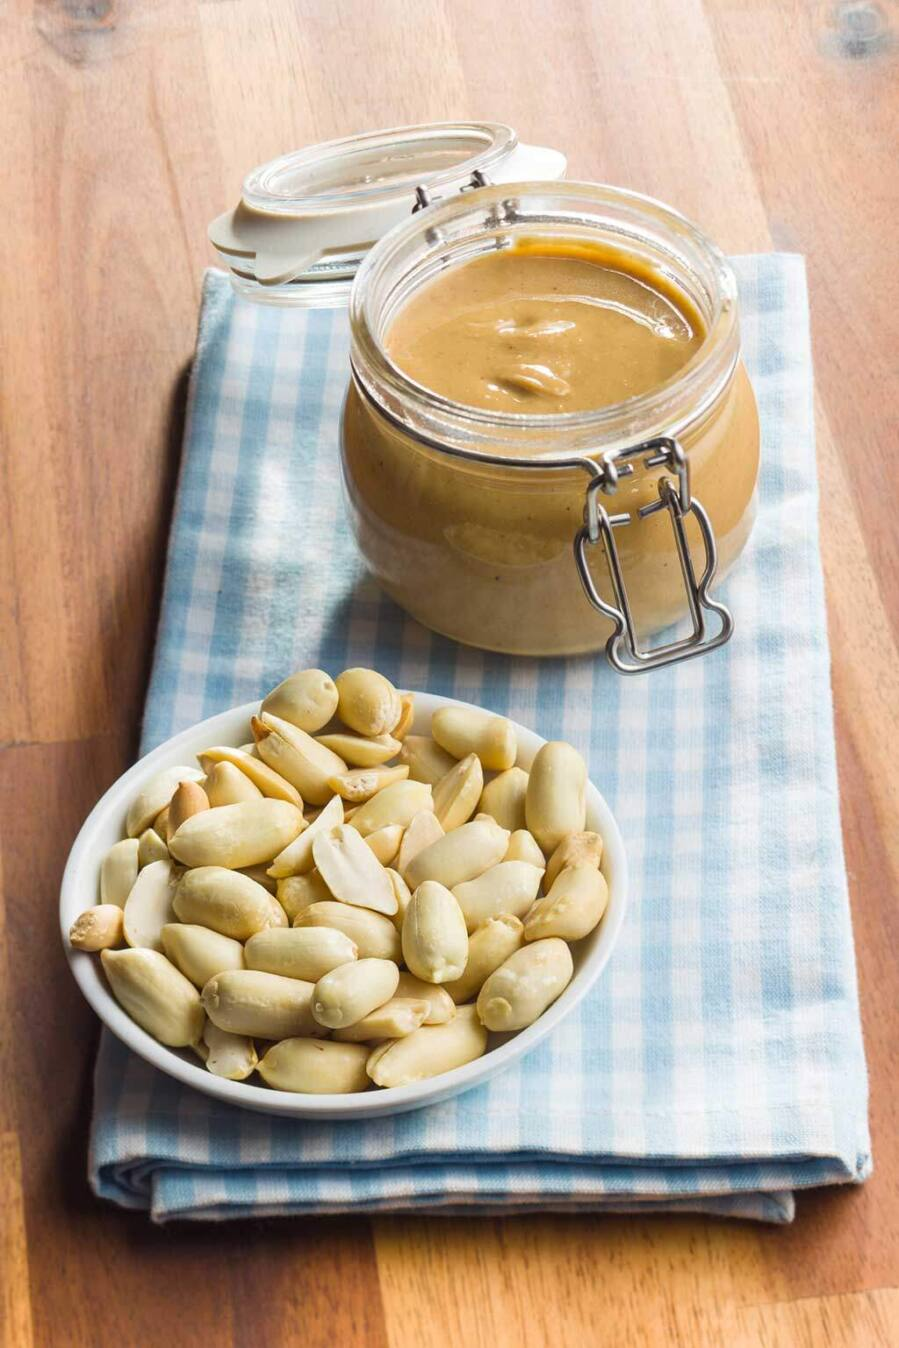 peanut-butter-in-jar-and-peanuts-PA9ZPEX-2